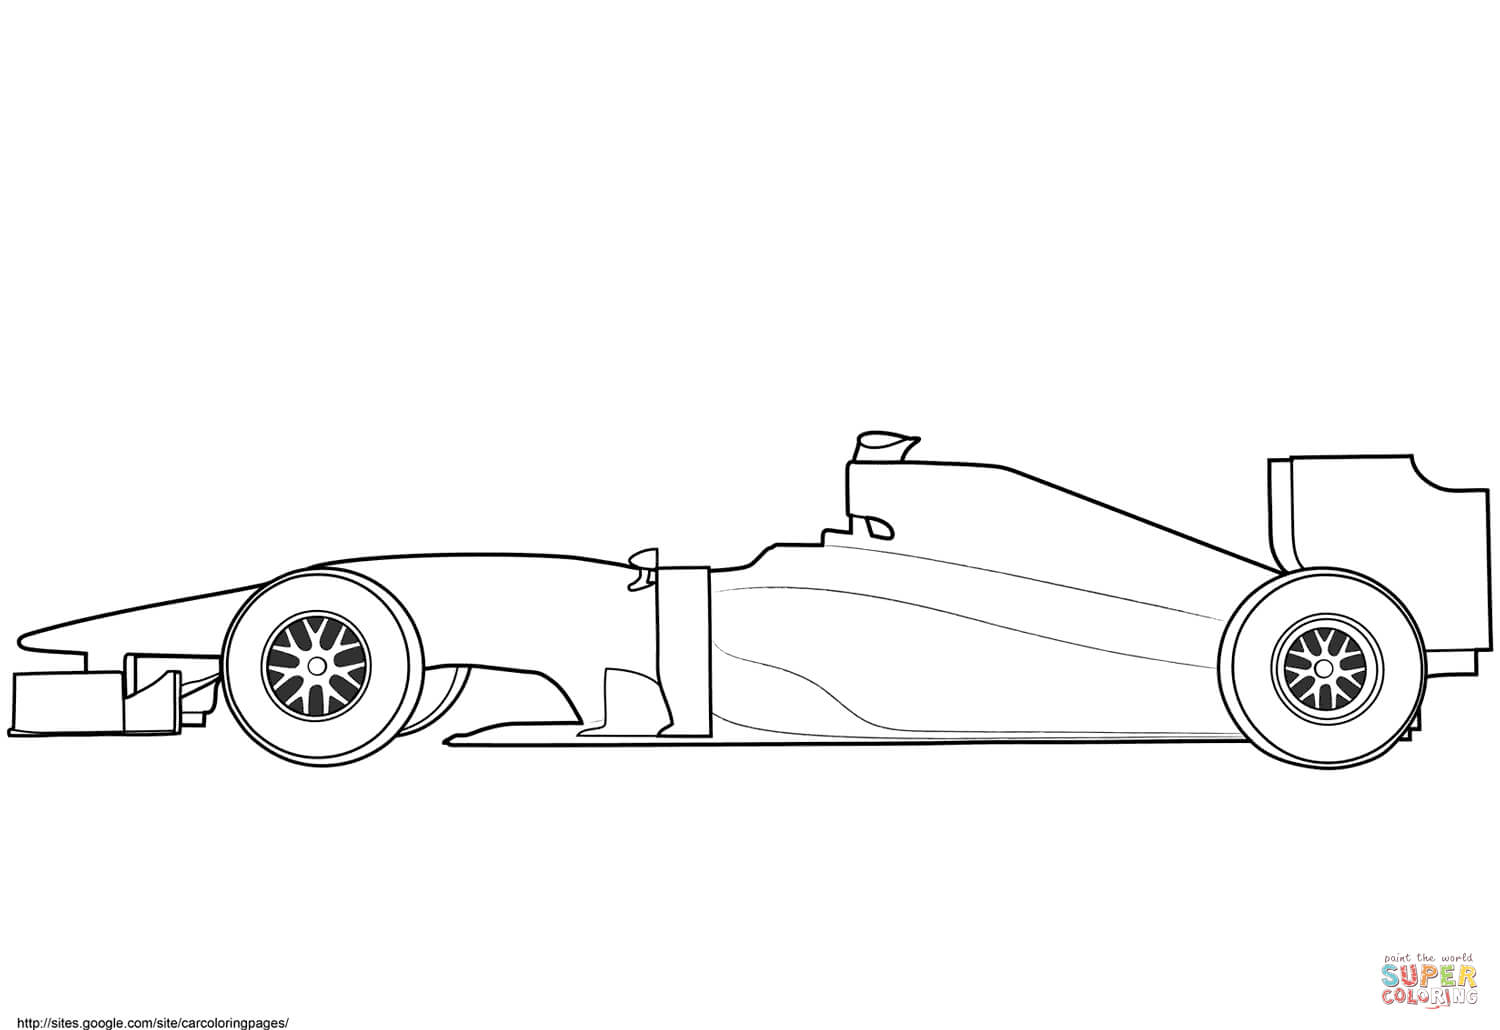 Blank Formula 1 Race Car Coloring Page | Free Printable Within Blank Race Car Templates